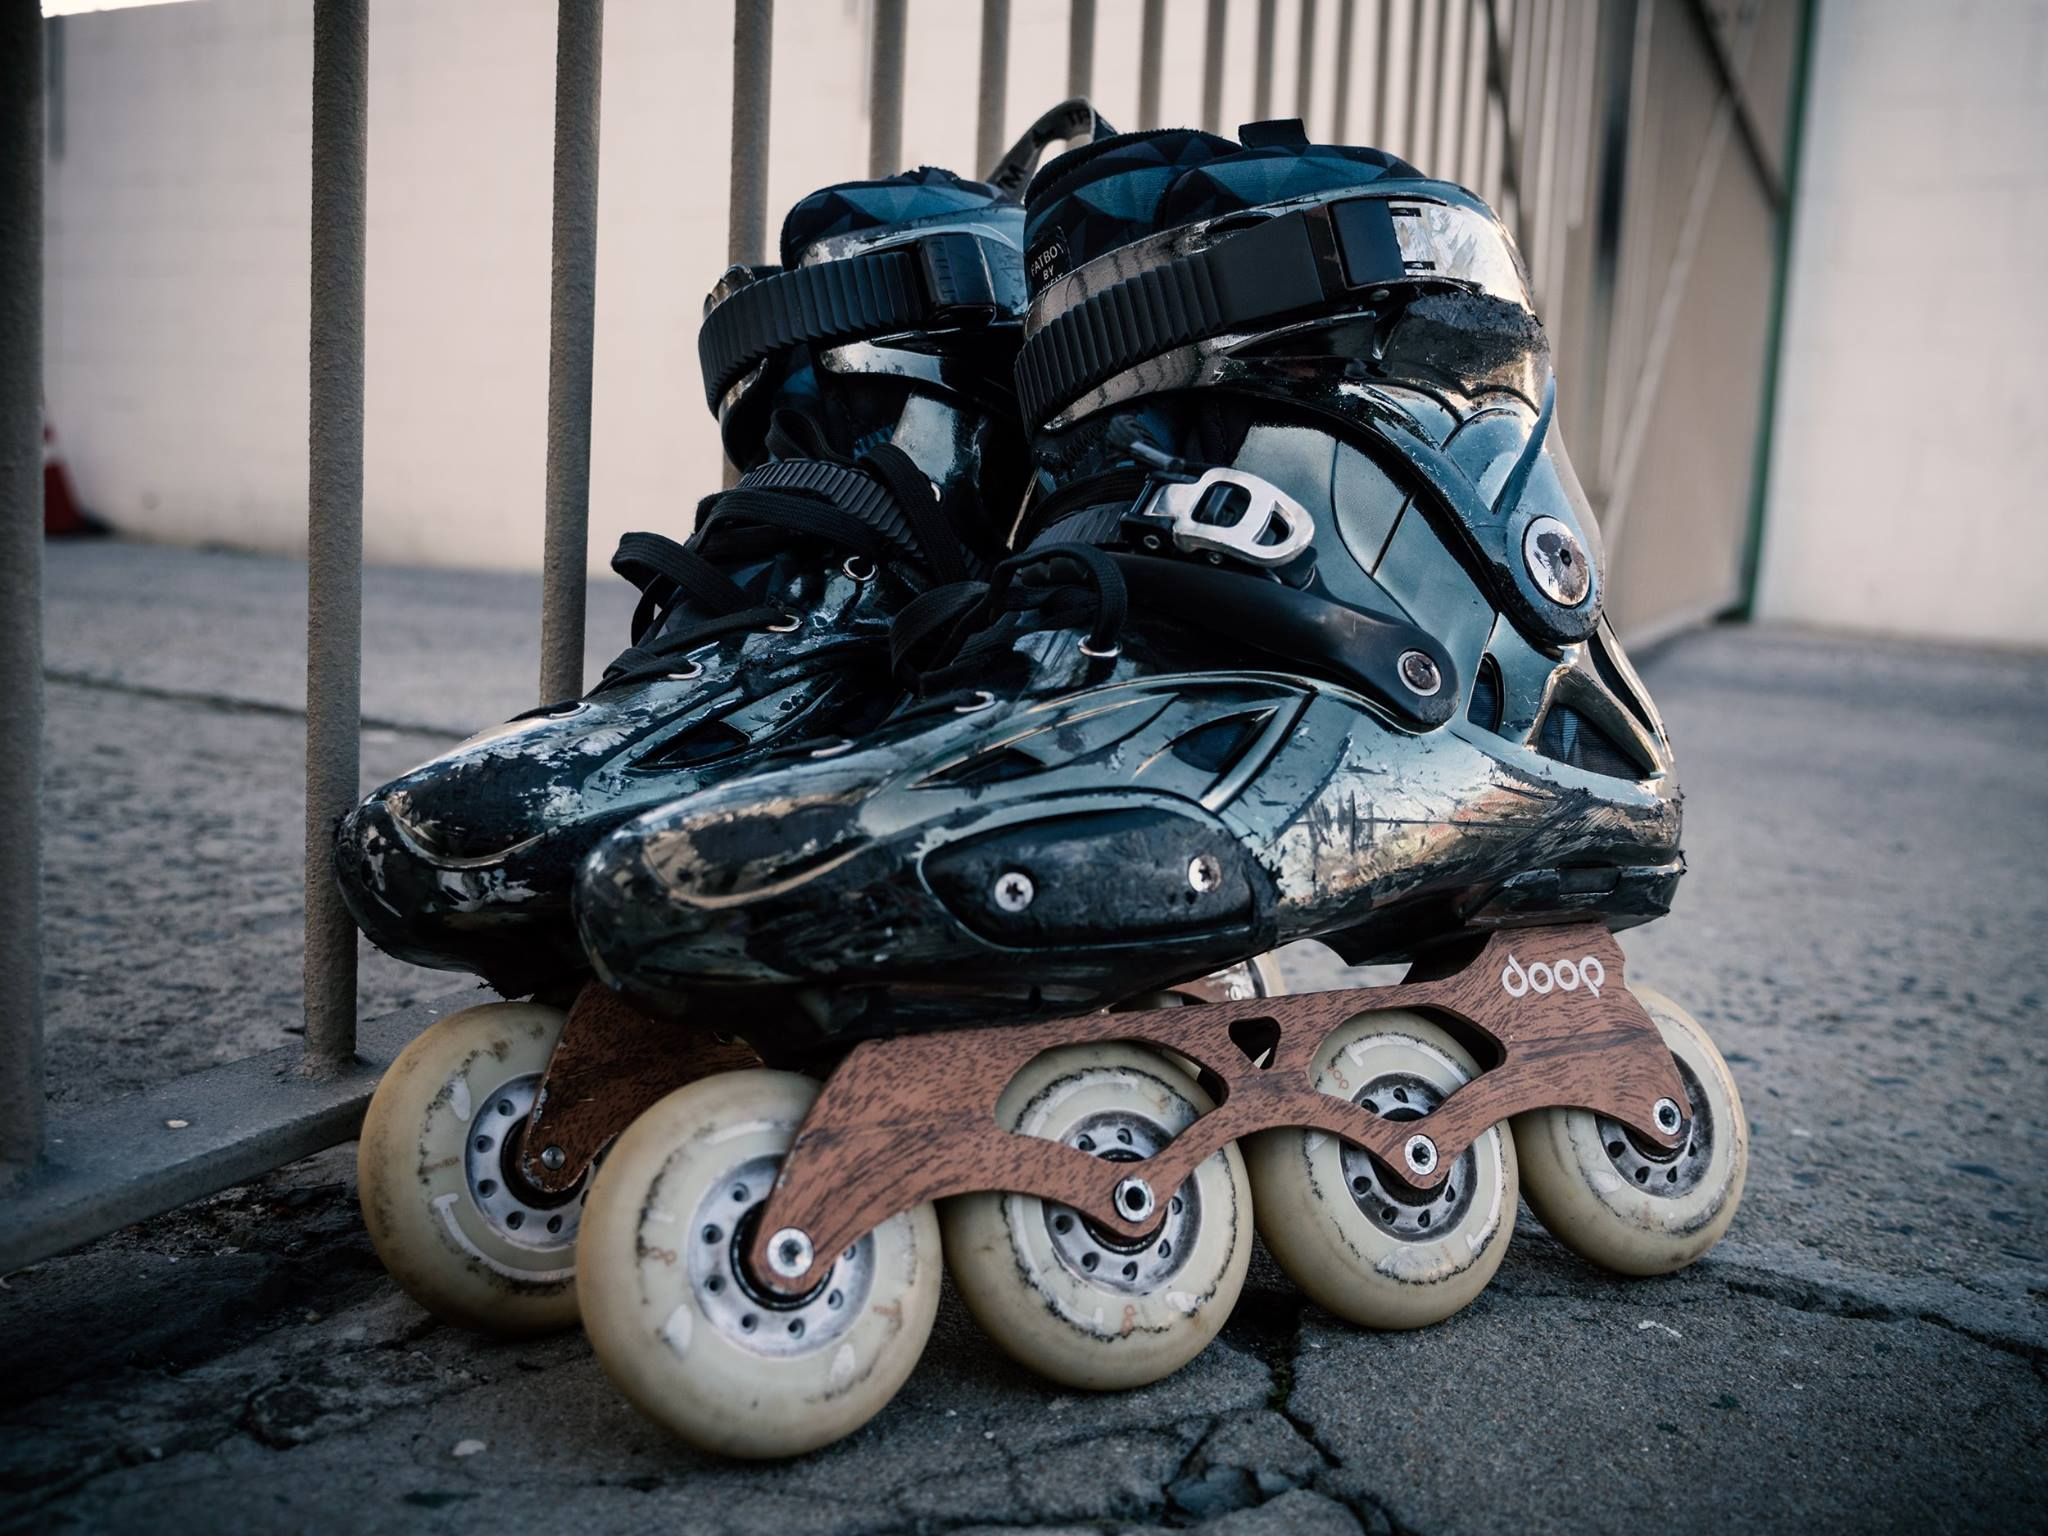 Zumiez roller skates - The Esthetics Of Used Skates Is An Art Genre Of Its Own Here We Have